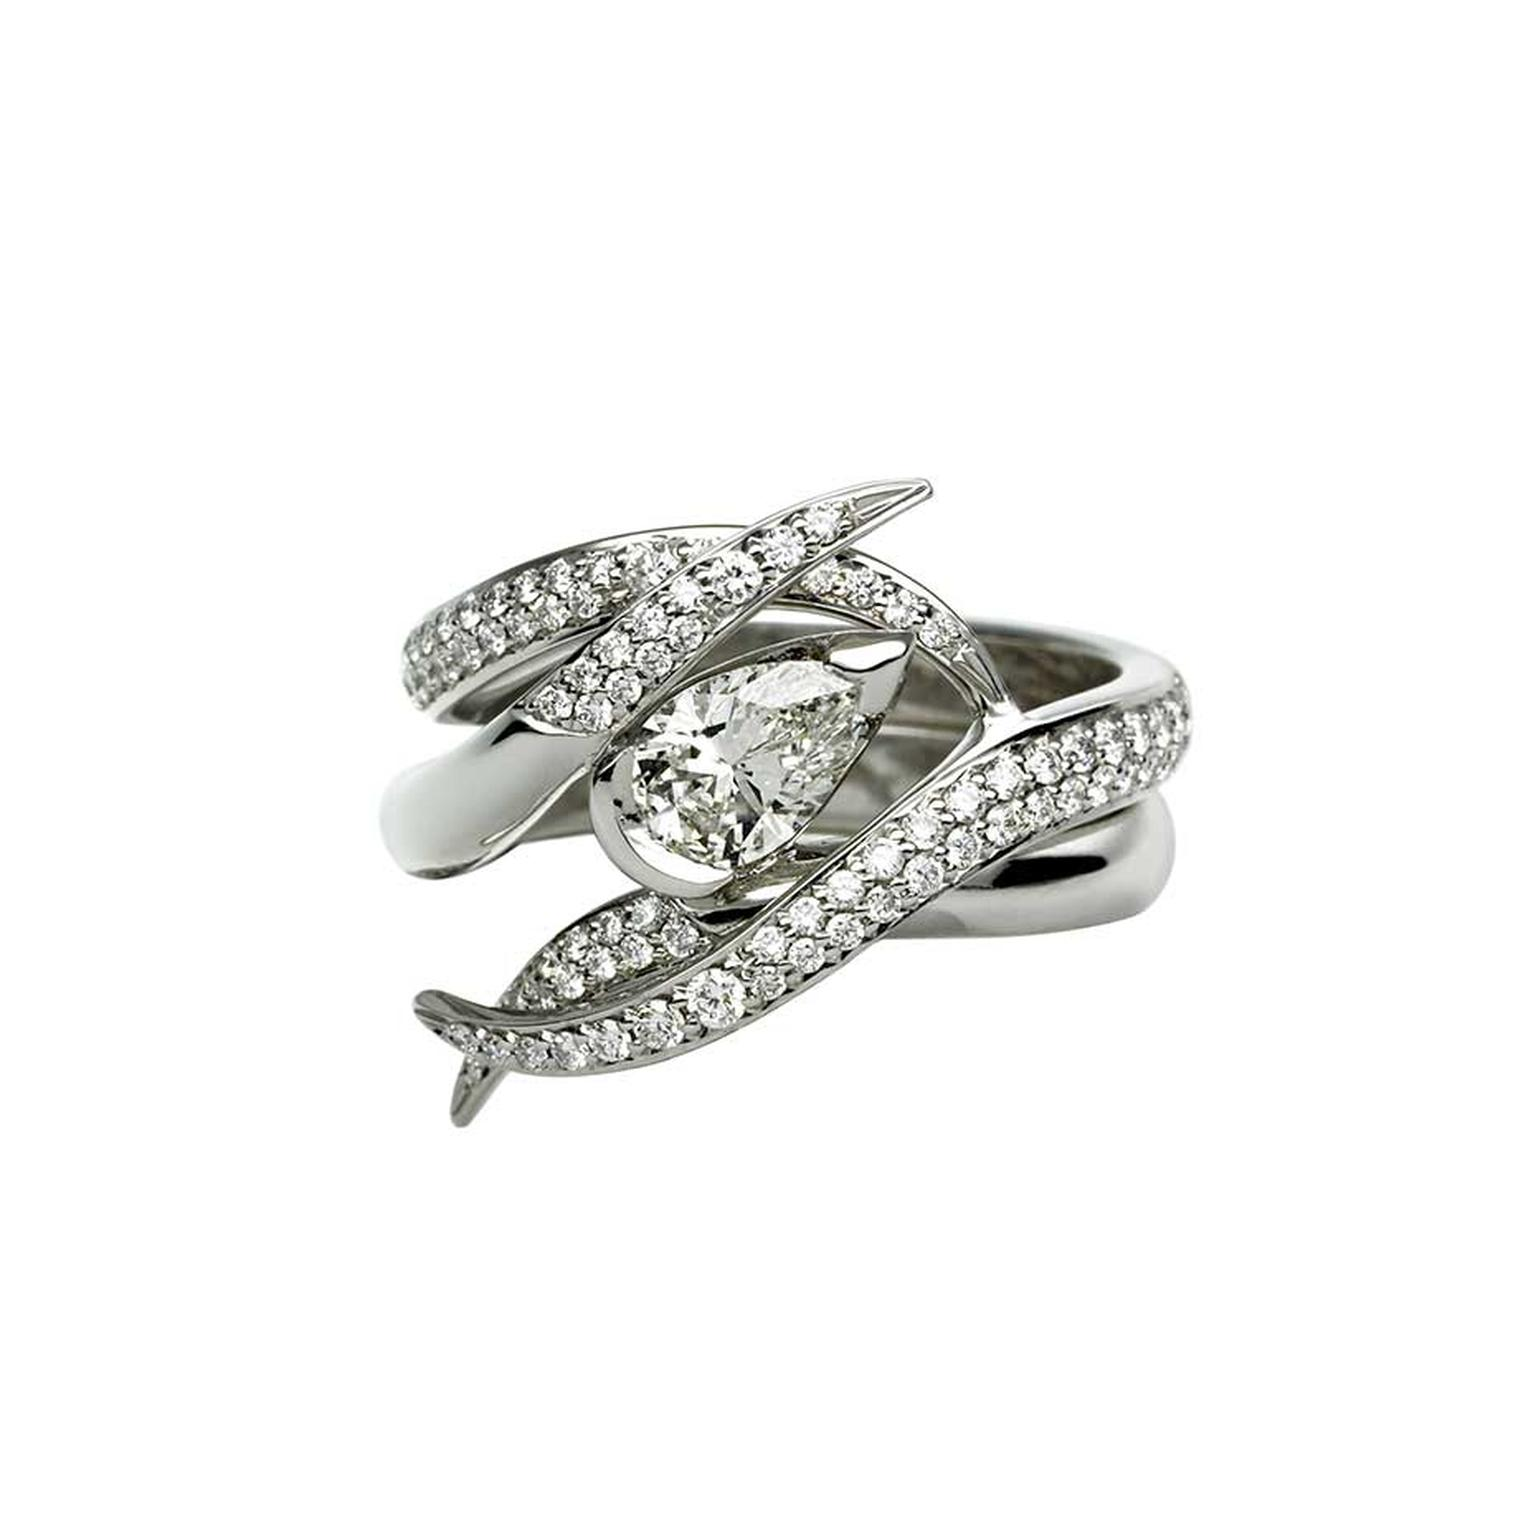 Shaune Leane white gold and diamond Ariana engagement ring and wedding band set (£7,550).